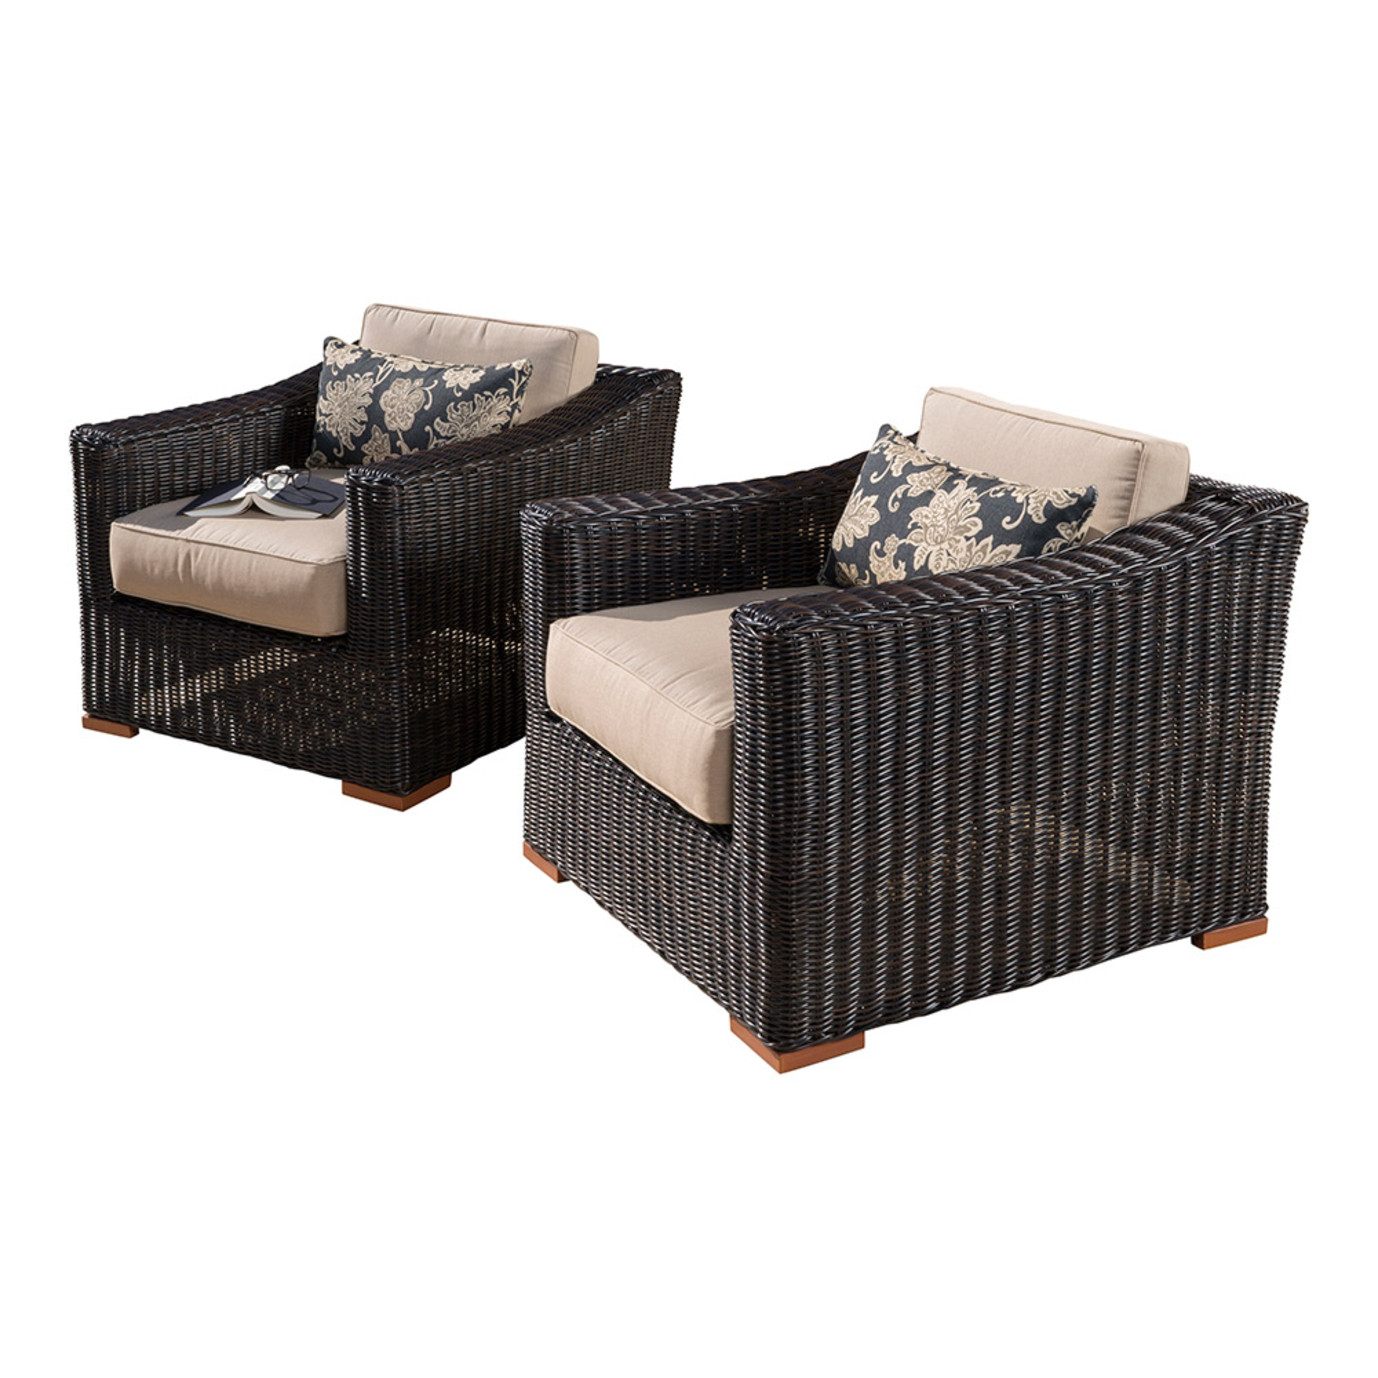 Resort™ 2pc Club Chair Set - Espresso/ Heather Beige